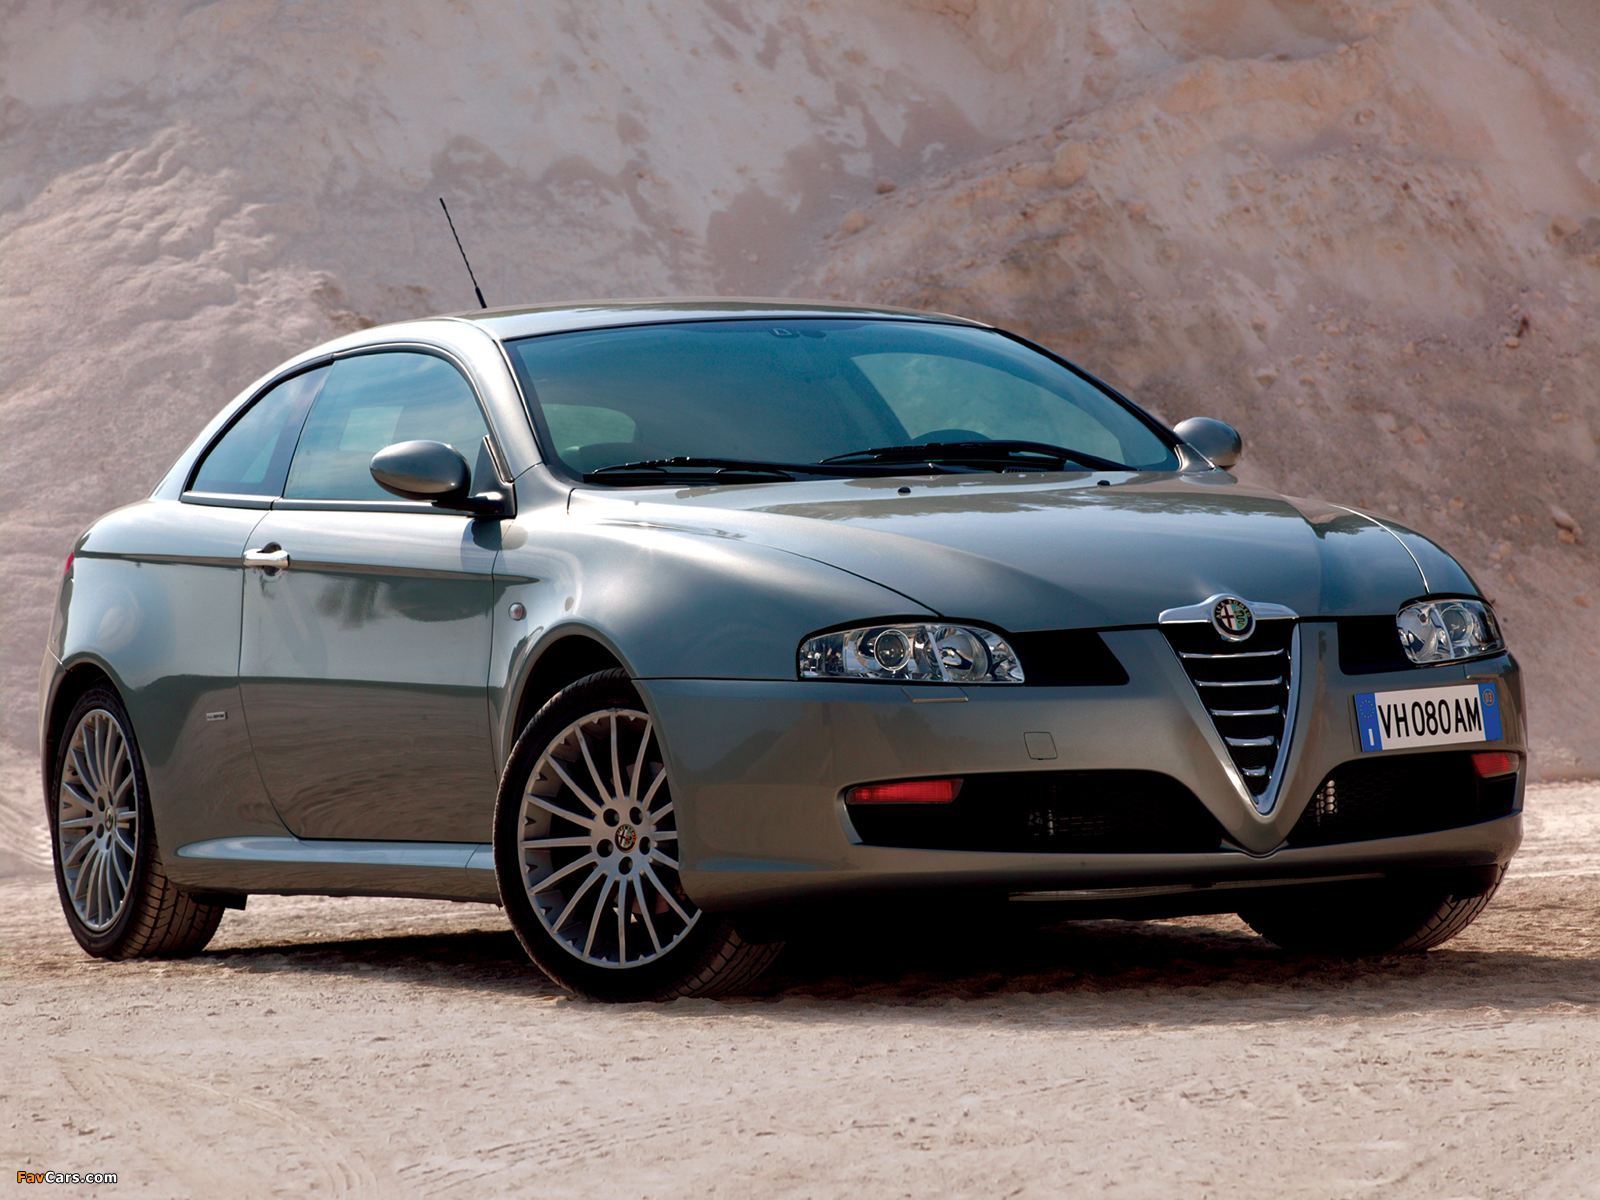 wallpapers of alfa romeo gt 937 2003 2010 1600x1200. Black Bedroom Furniture Sets. Home Design Ideas